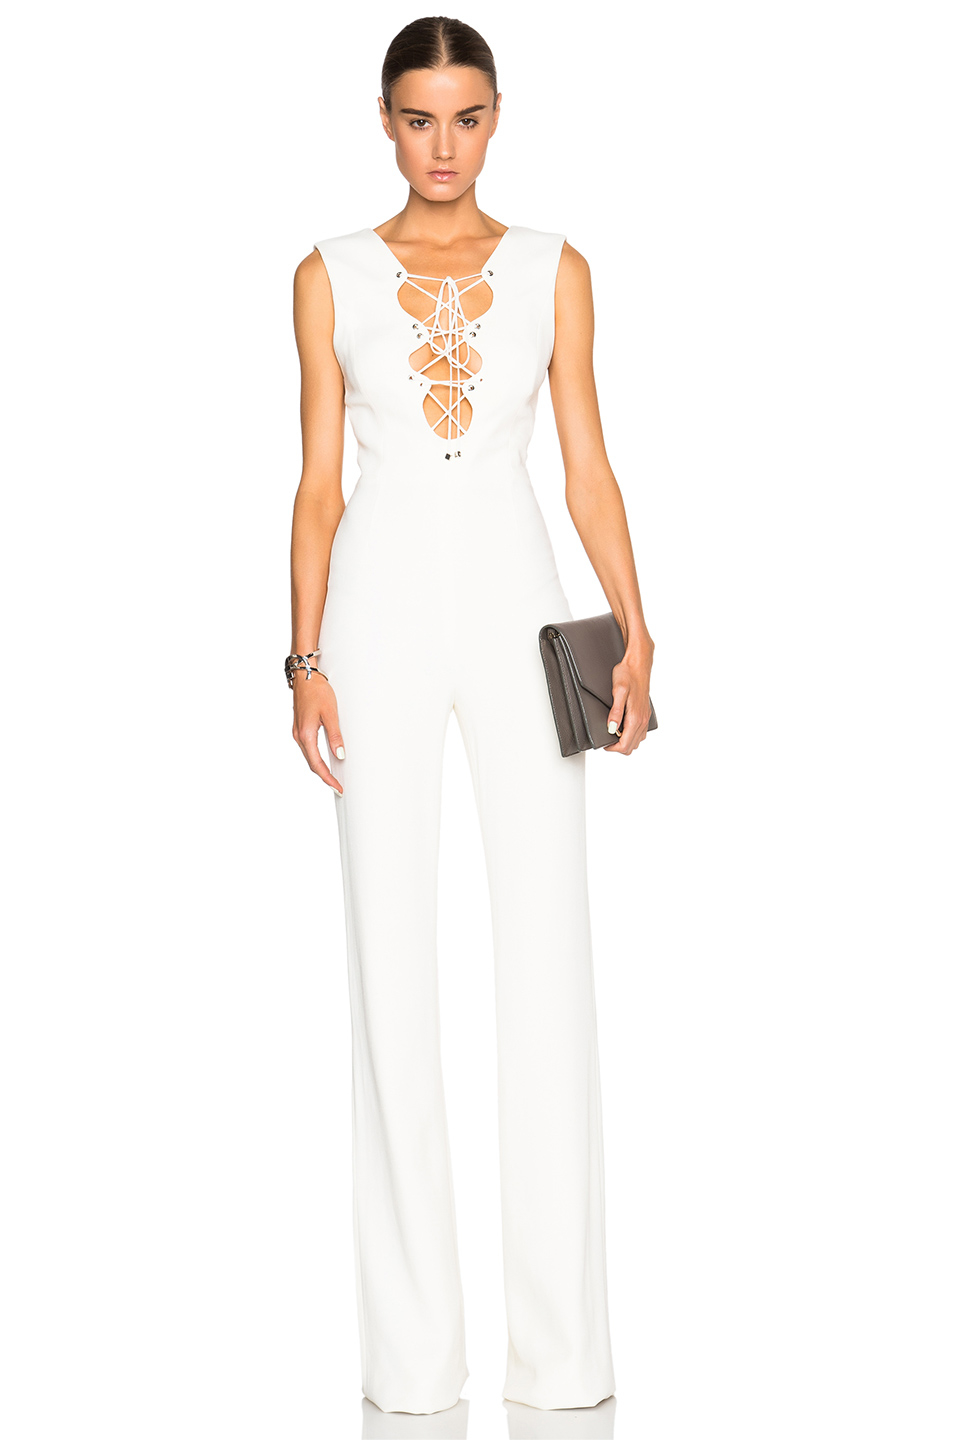 Emilio pucci Lace Up Jumpsuit in White | Lyst